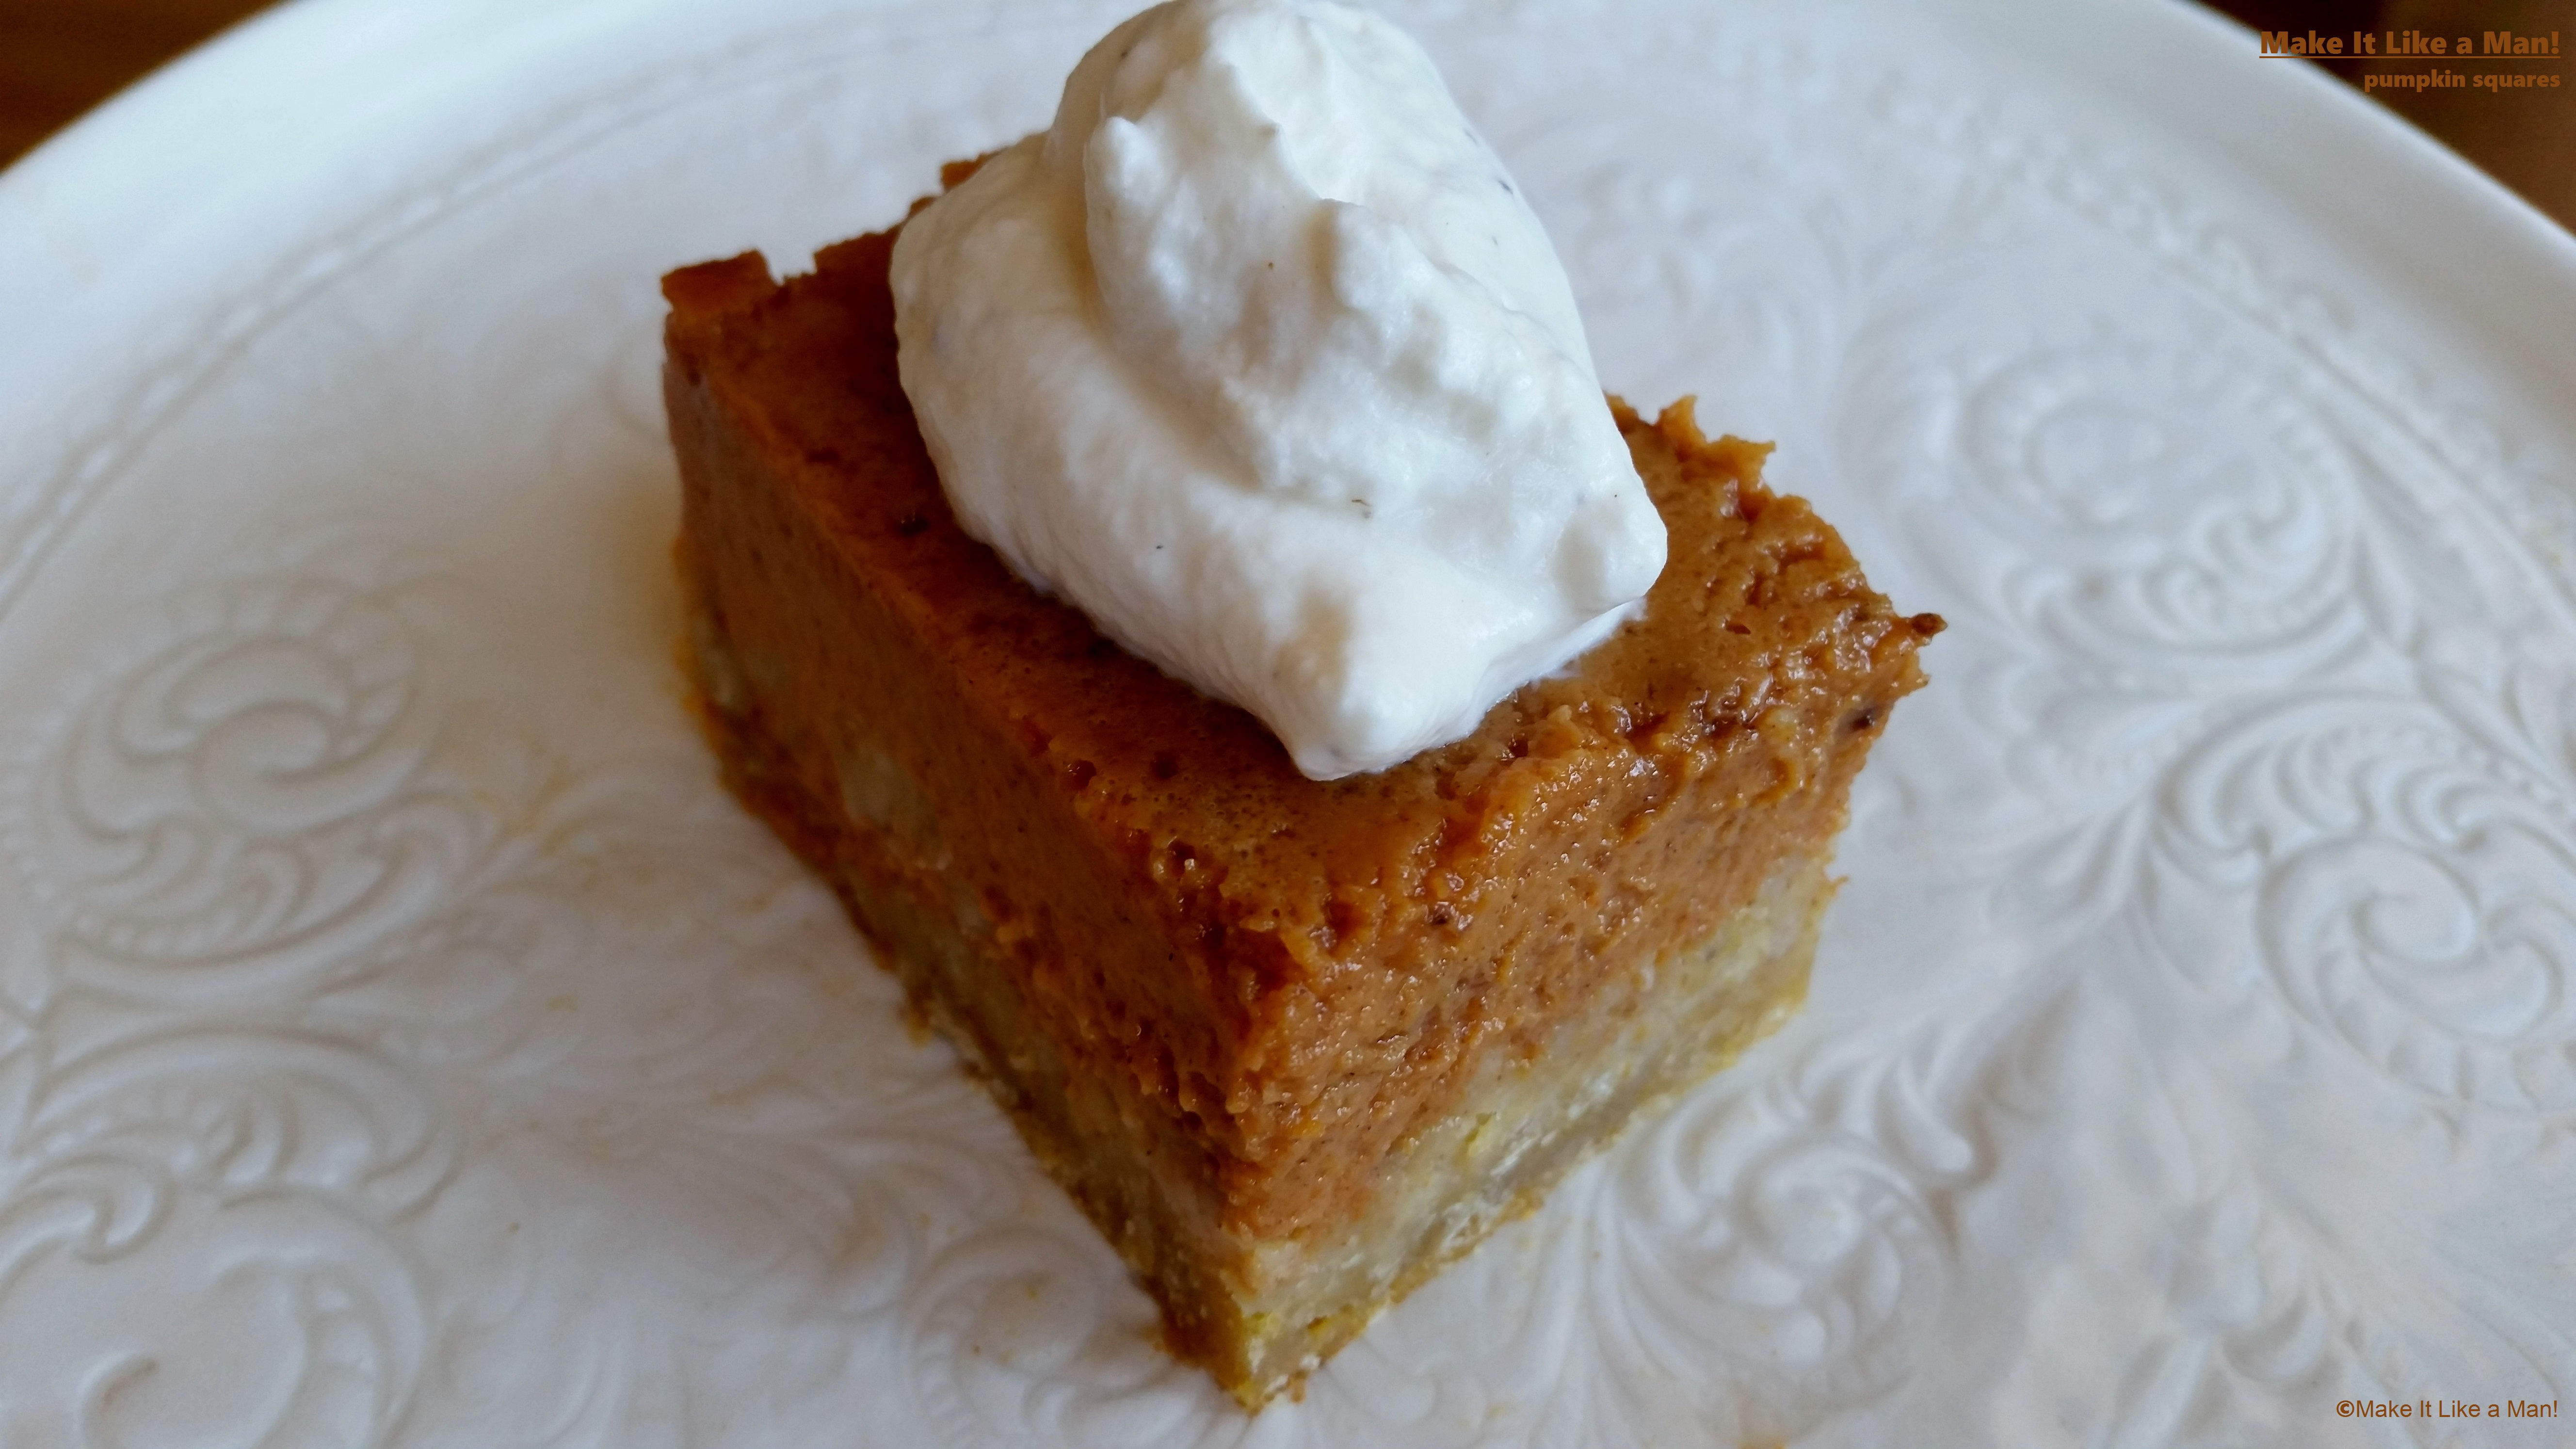 Pumpkin Pie Bars with Clove Whipped Cream - Make It Like a Man!